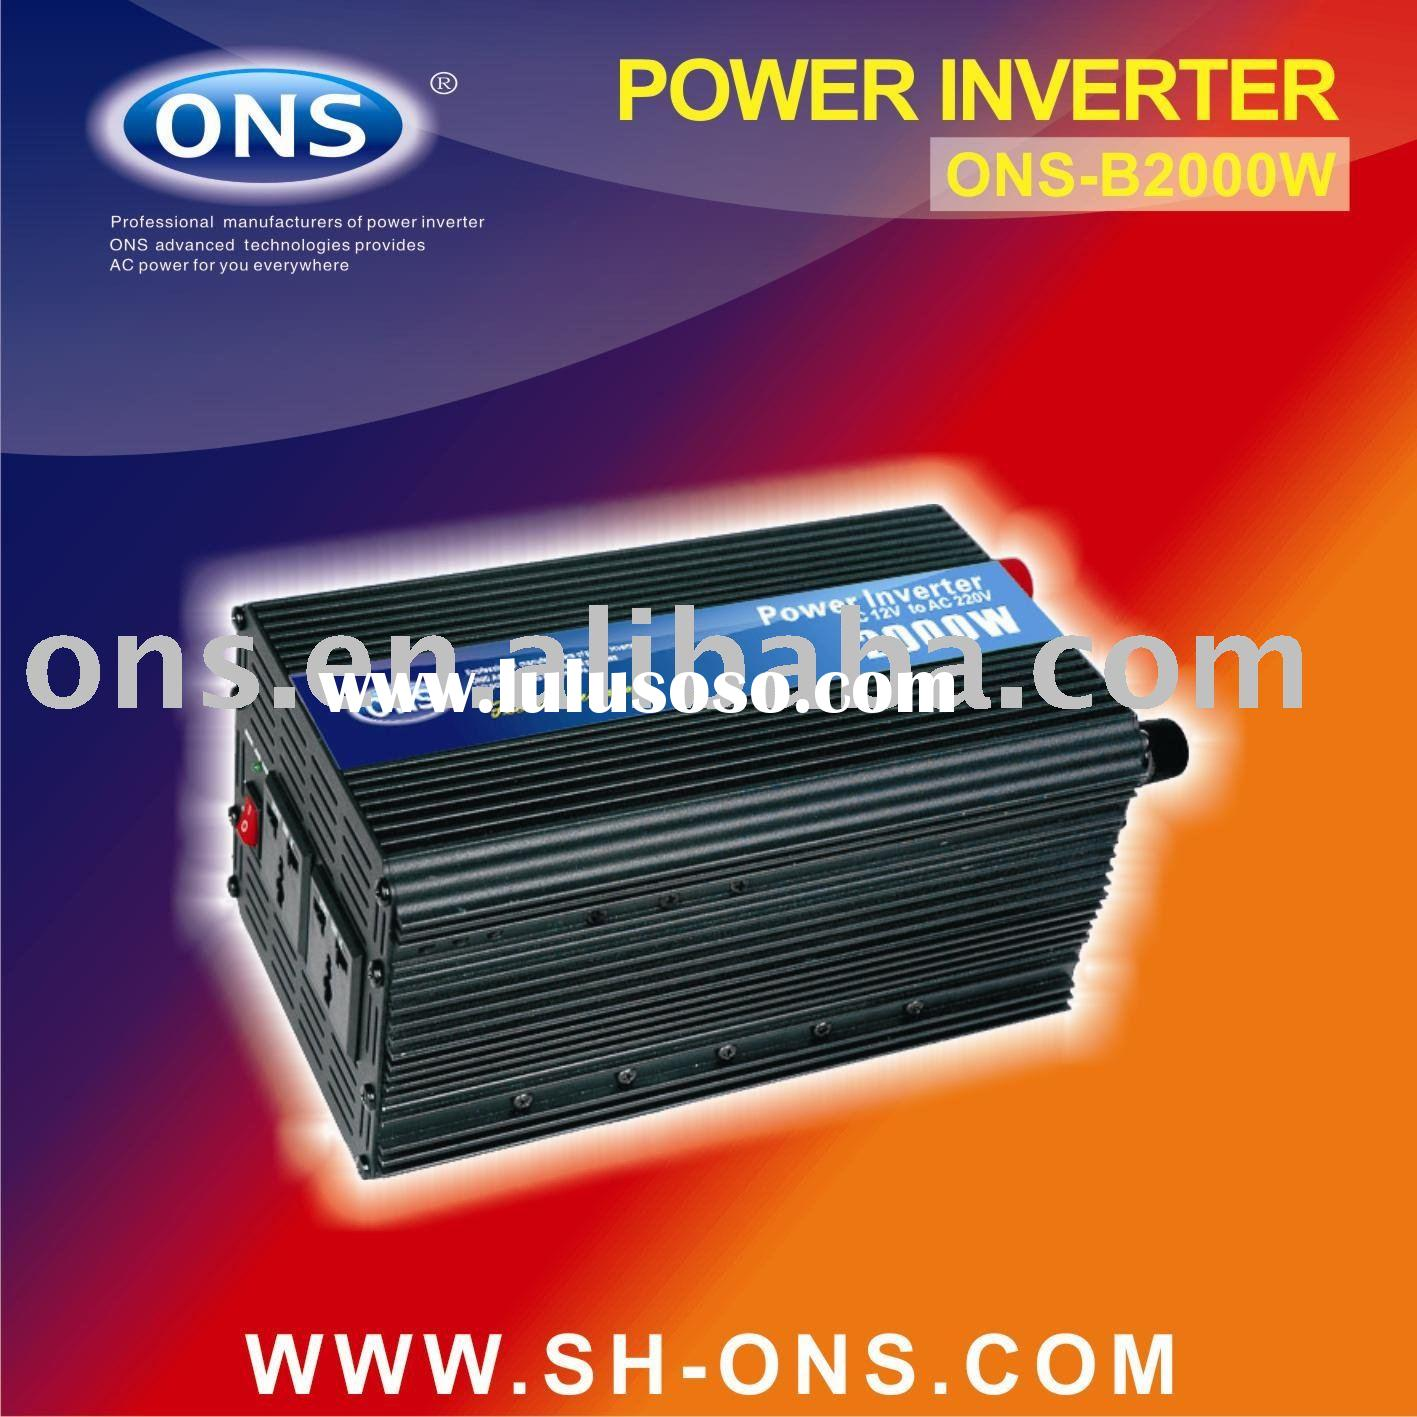 dc to ac power inverter 2000W for outdoor home solar wind using